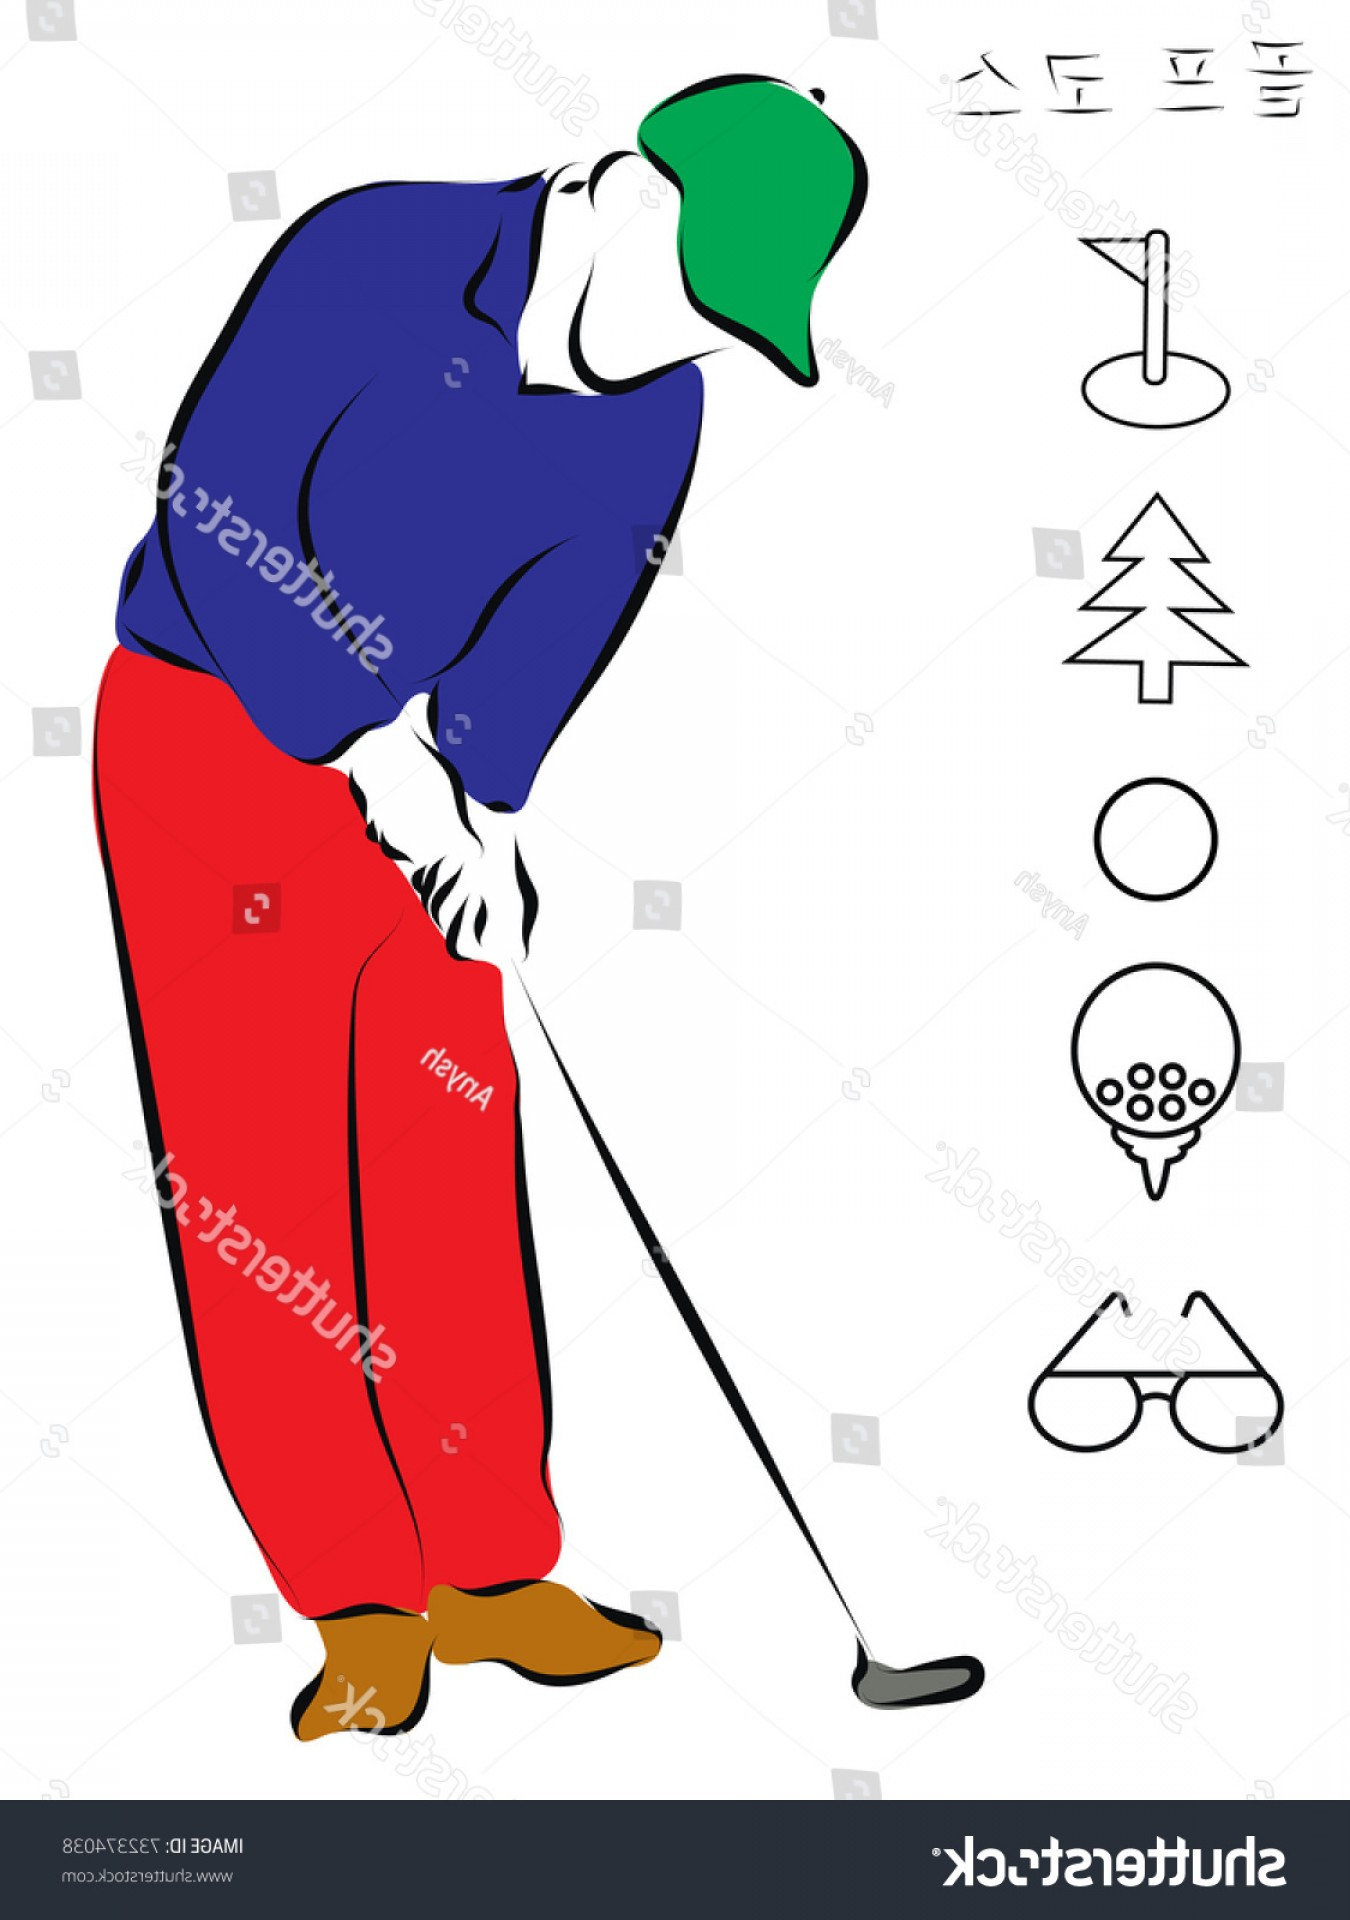 Vector Golf Simulator: Man Holding Golf Club Icons Playing